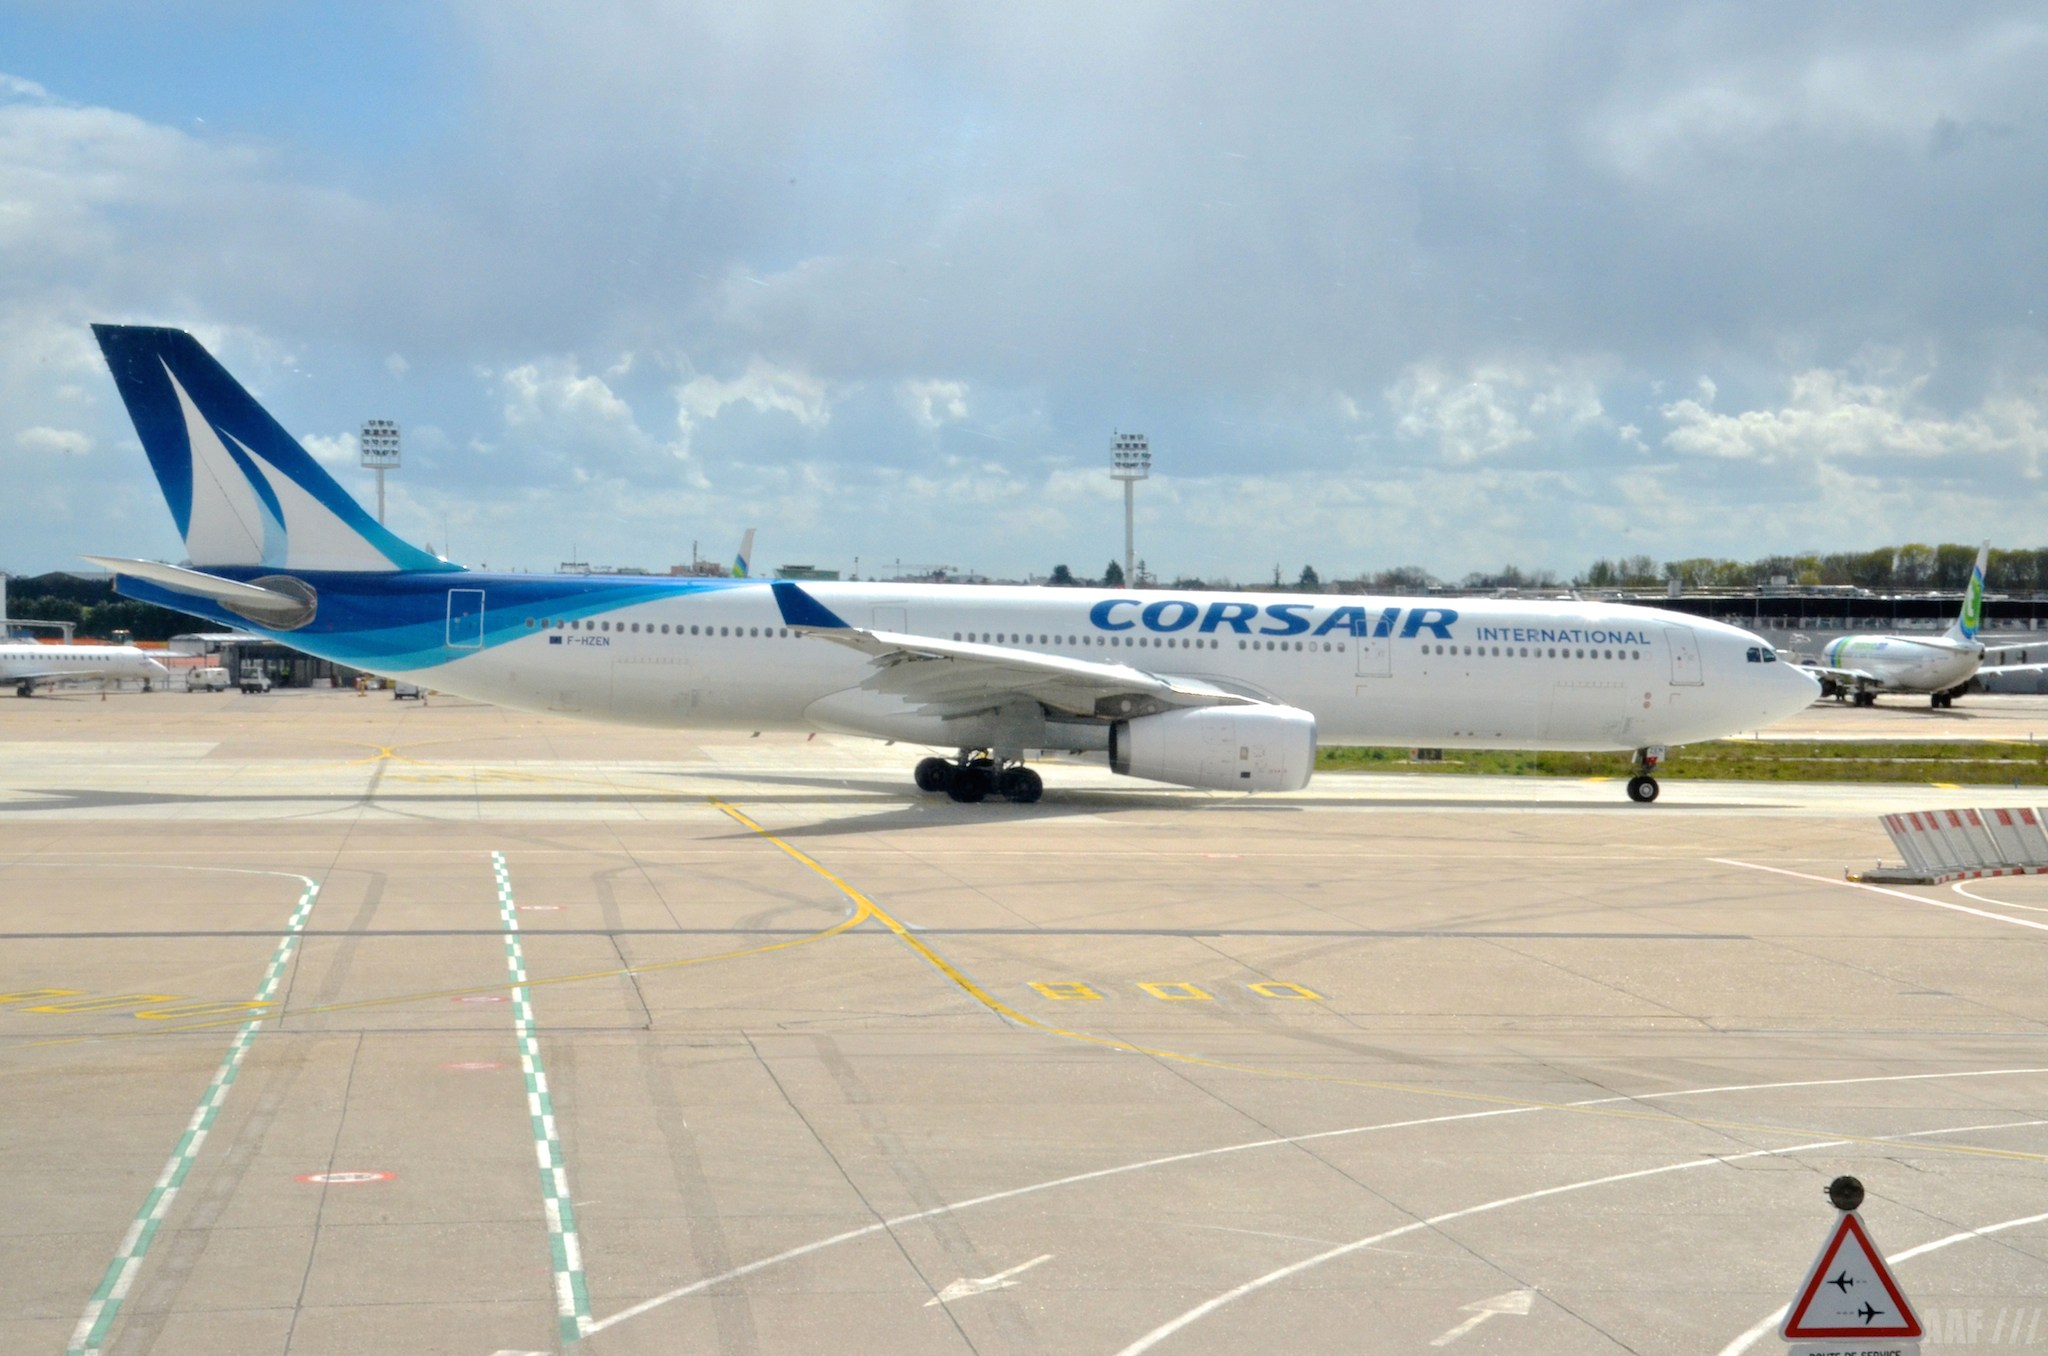 Corsair A330 - ORY - AAF_Aviation